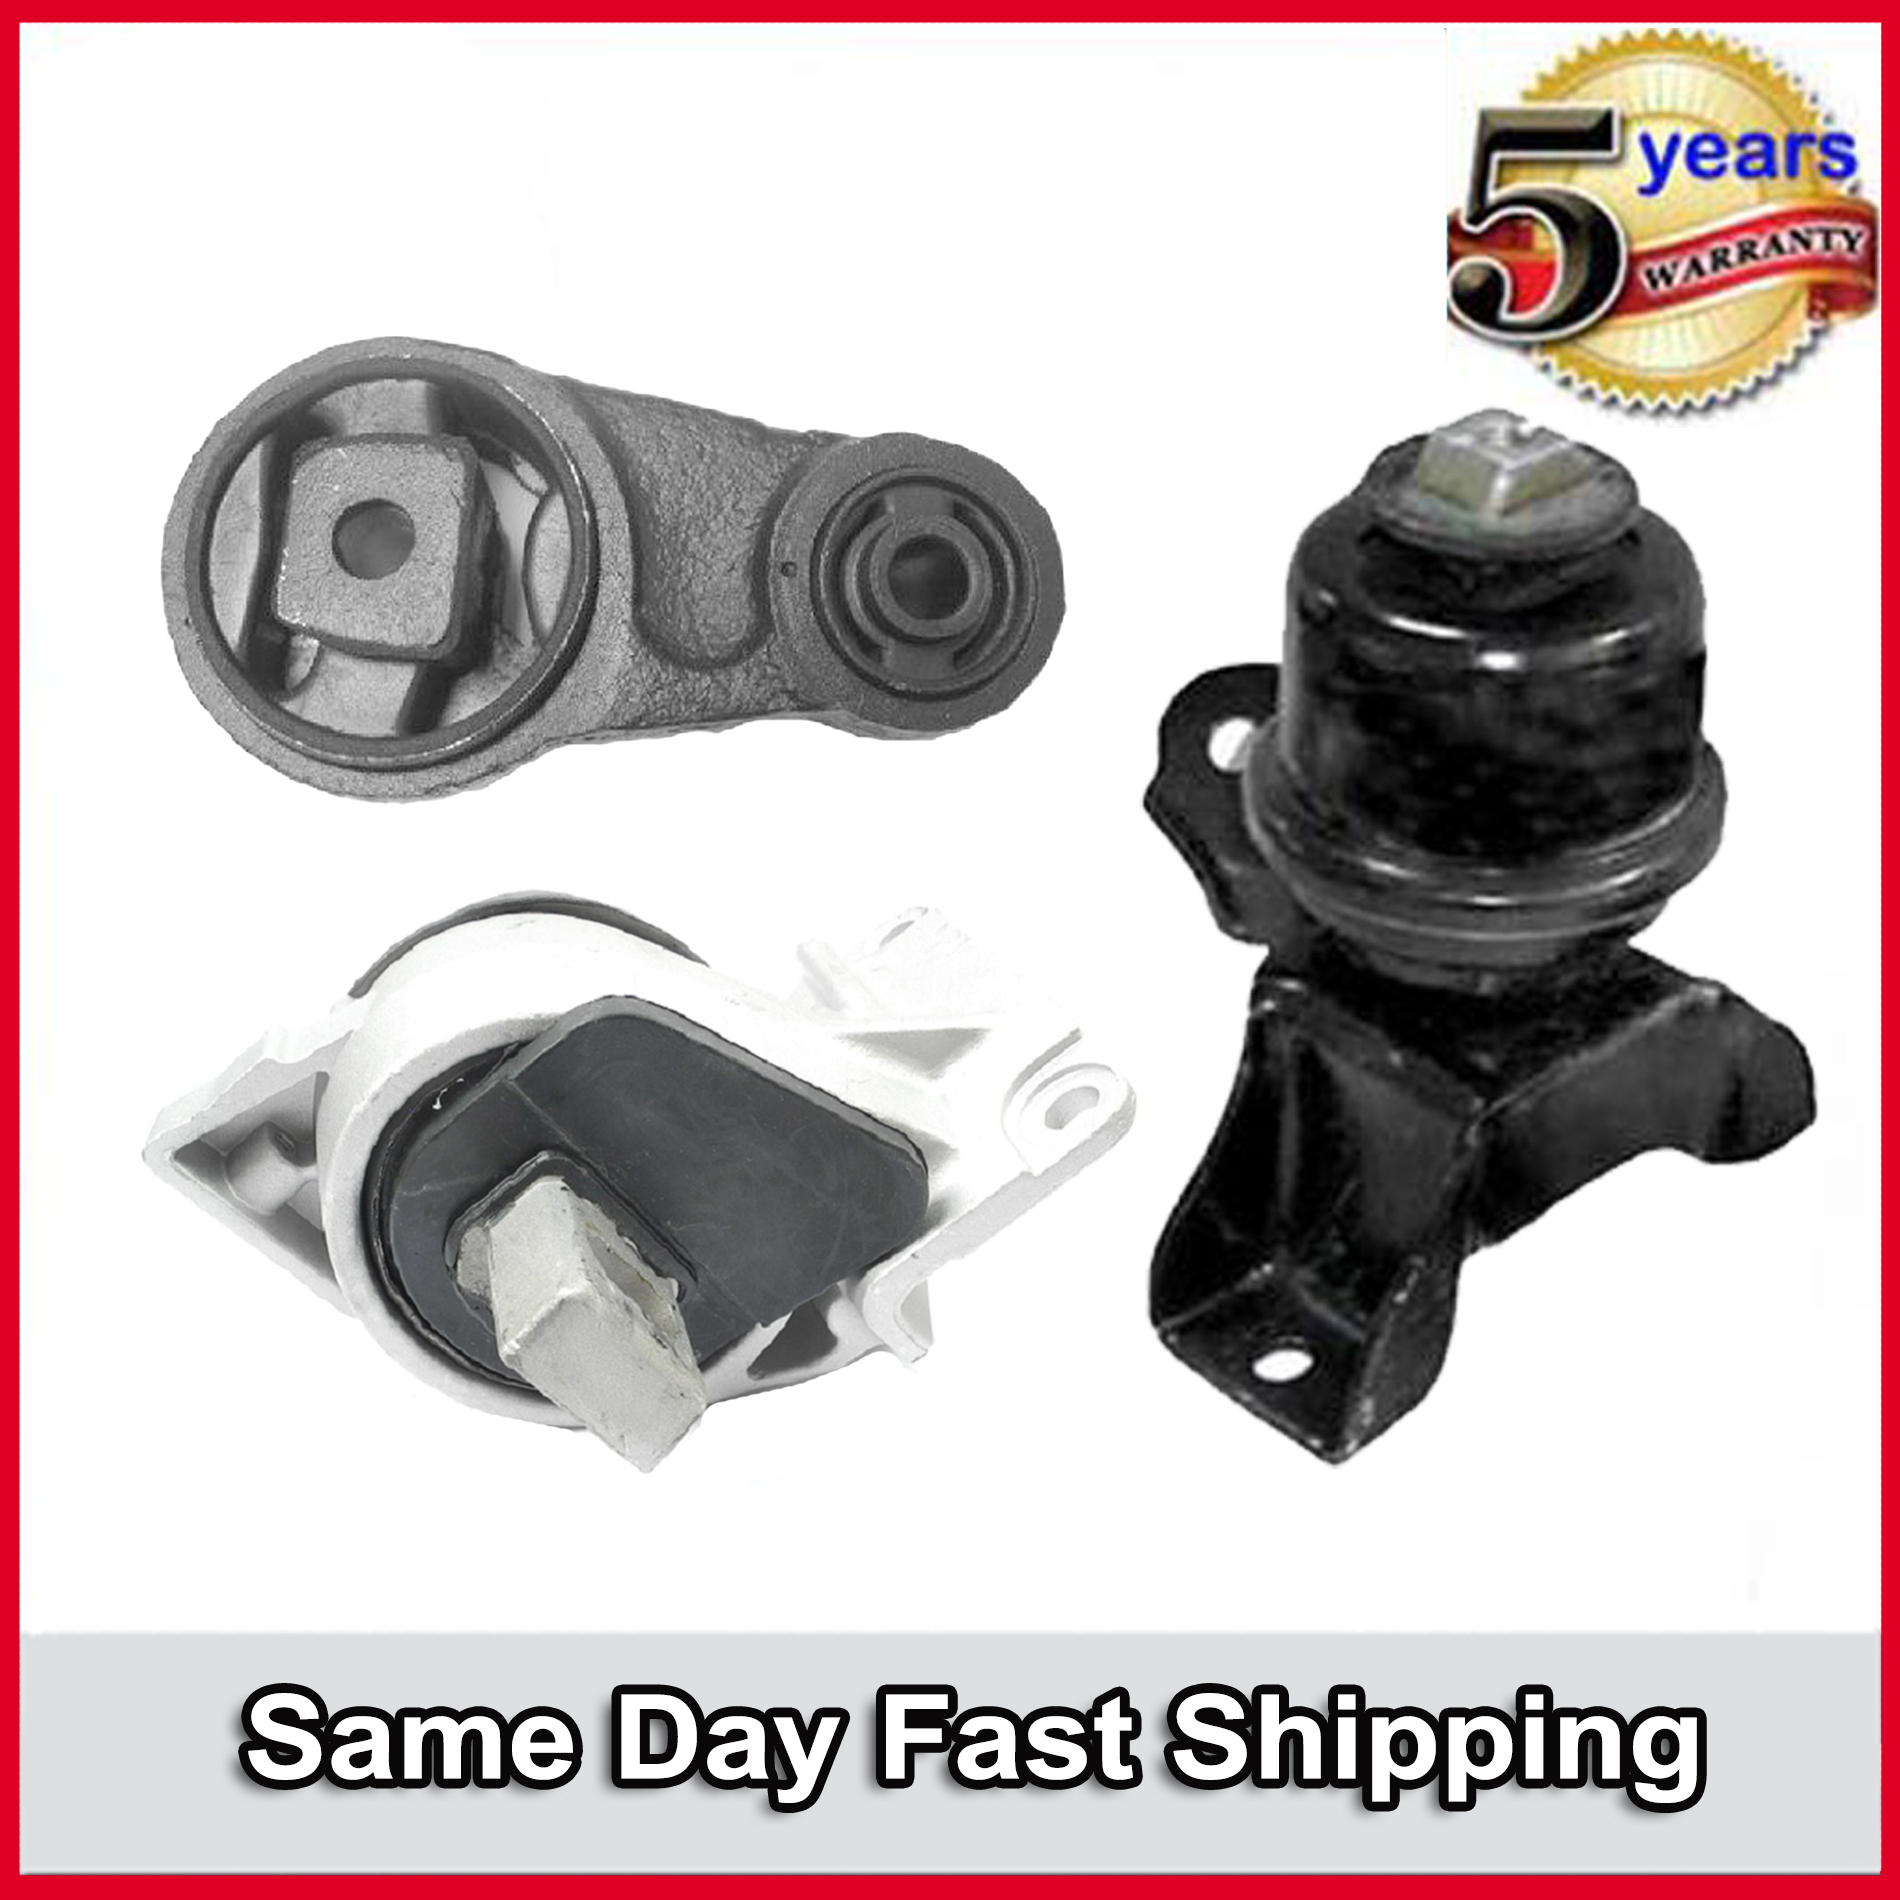 3 PCS FRONT MOTOR /& TRANS MOUNT FIT 2006-2009 Ford Fusion 3.0L 2WD